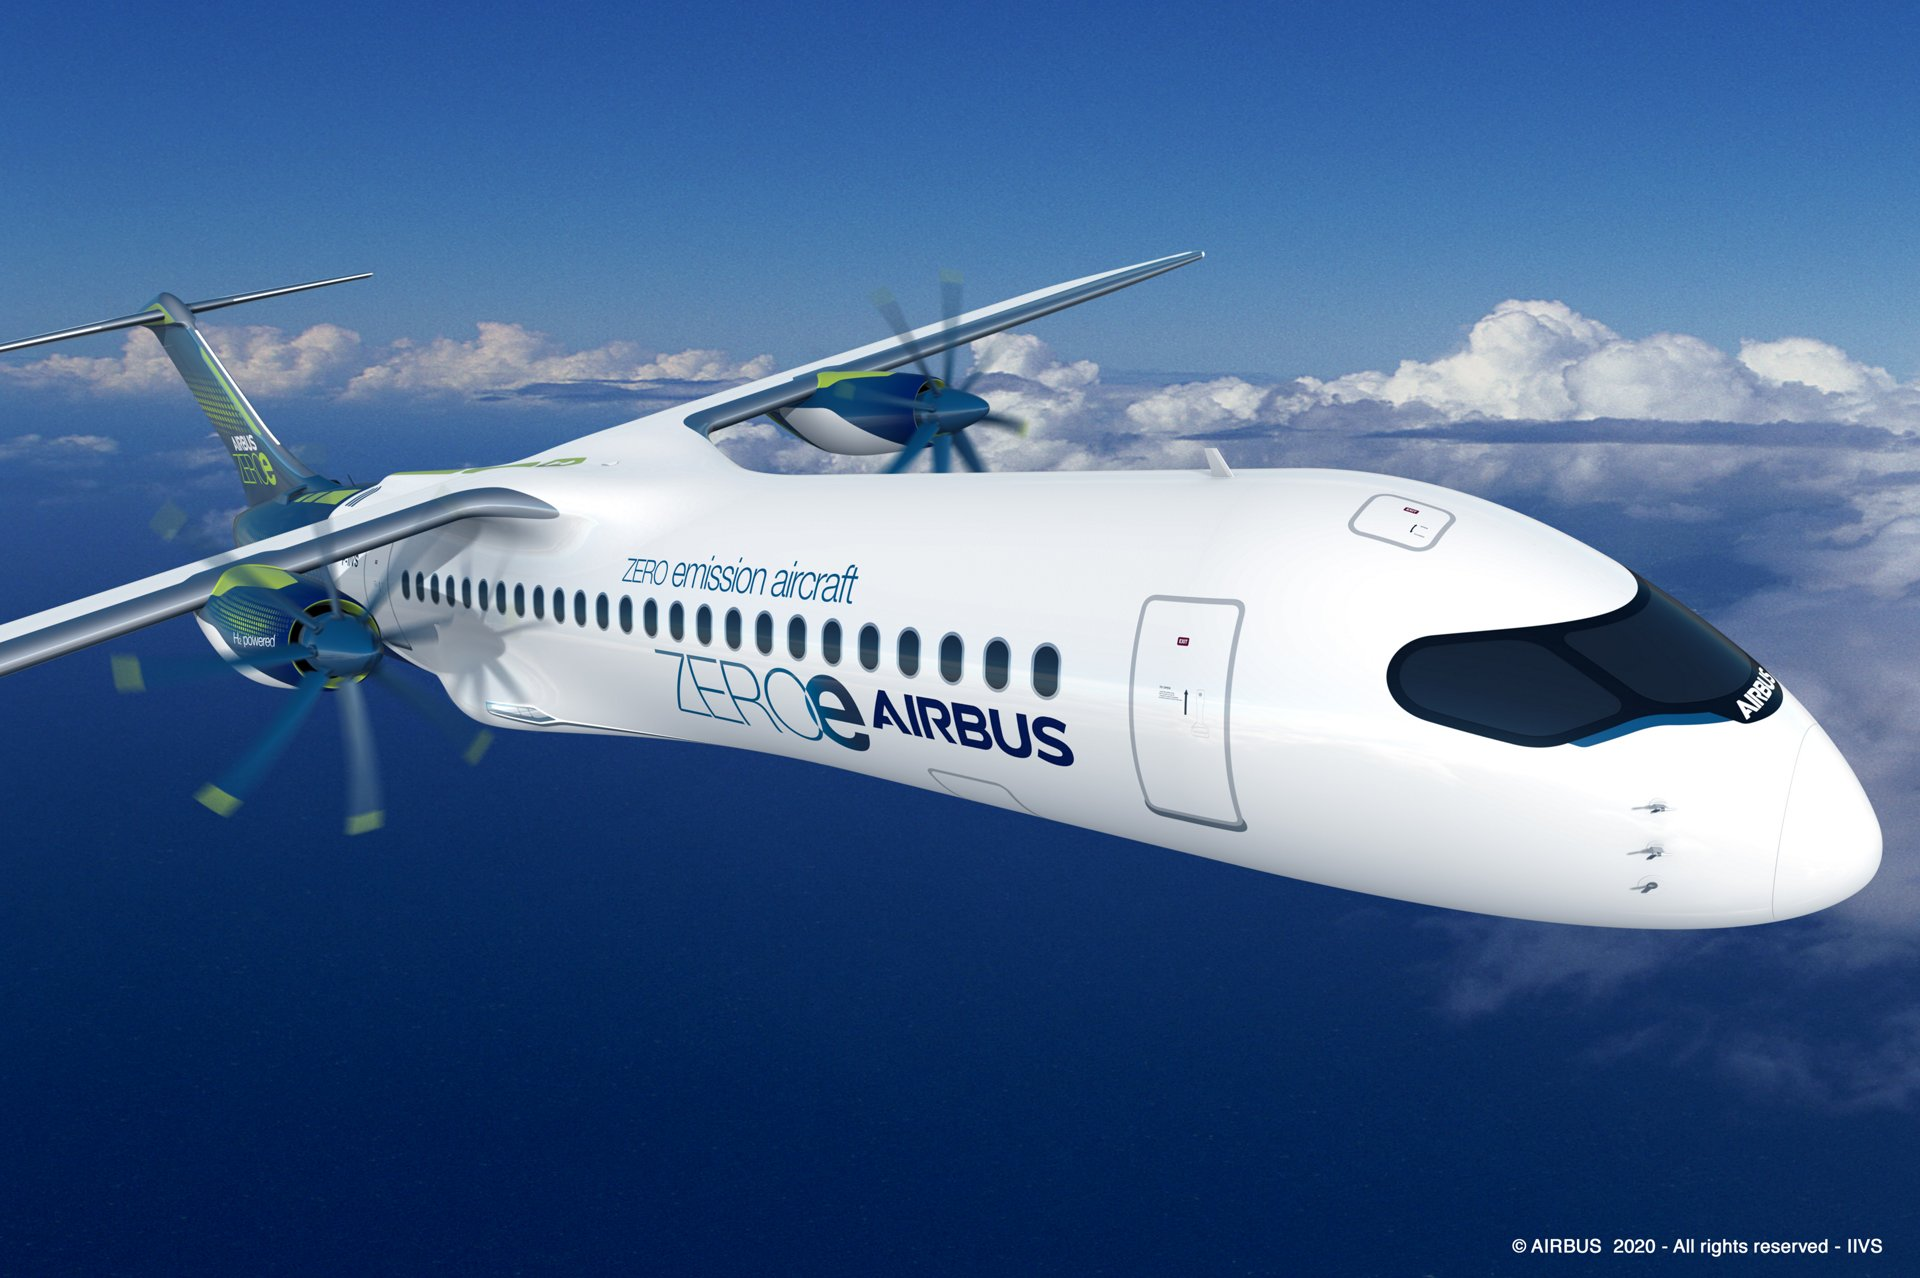 ZEROe is an Airbus concept aircraft. In the turboprop configuration, two hybrid hydrogen turboprop engines provide thrust. The liquid hydrogen storage and distribution system is located behind the rear pressure bulkhead.